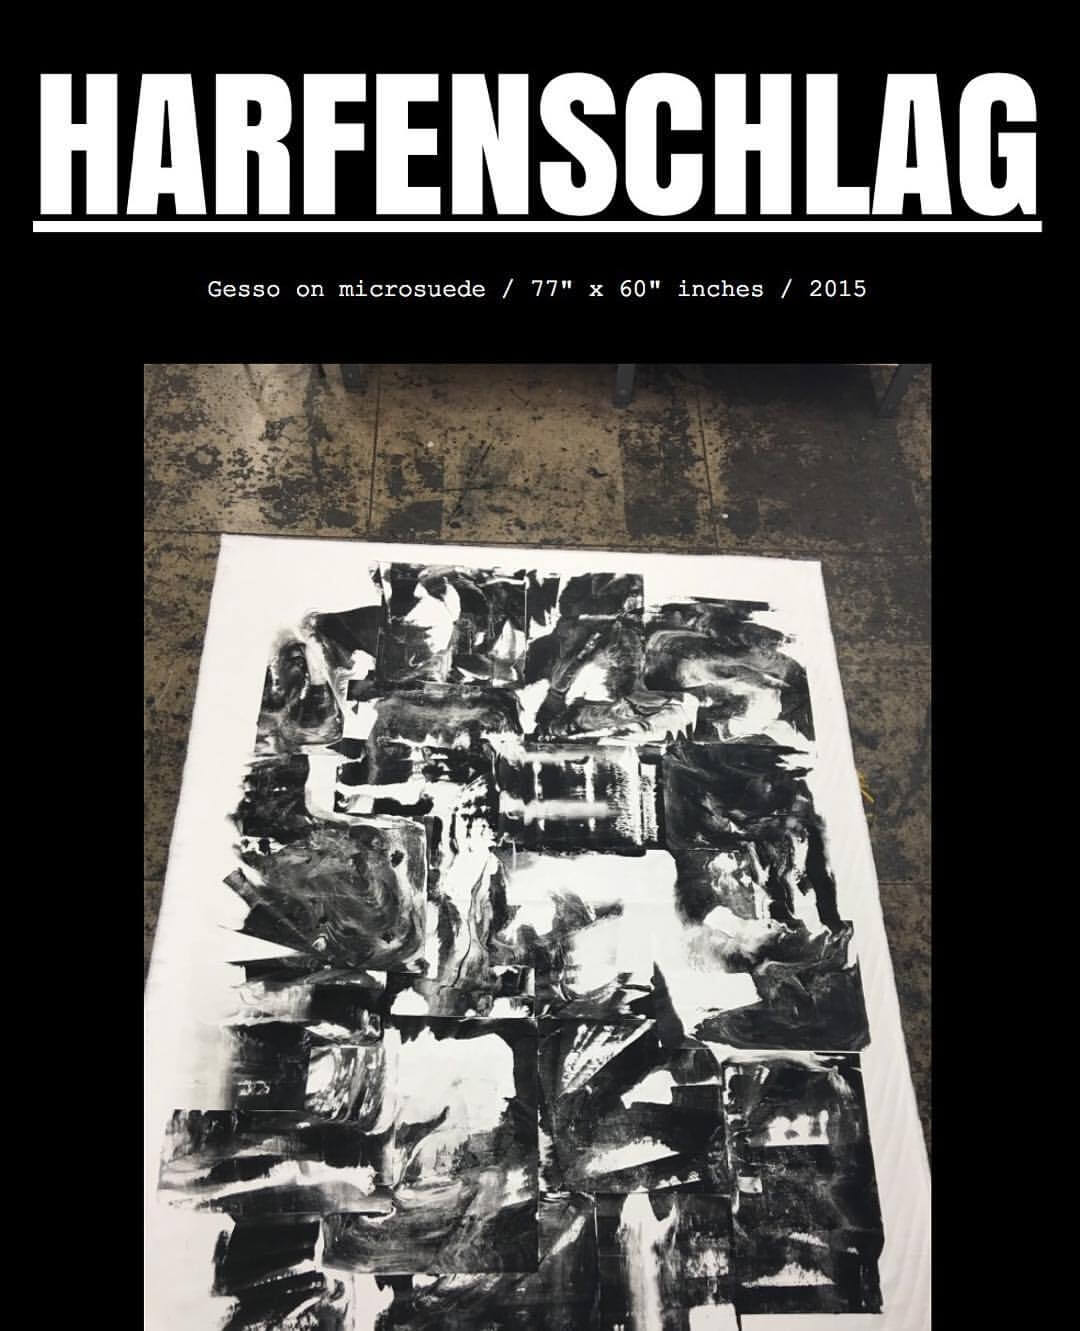 "HARFENSCHLAG (website view) / Gesso on microsuede / 77"" x 60"" inches / 2015"